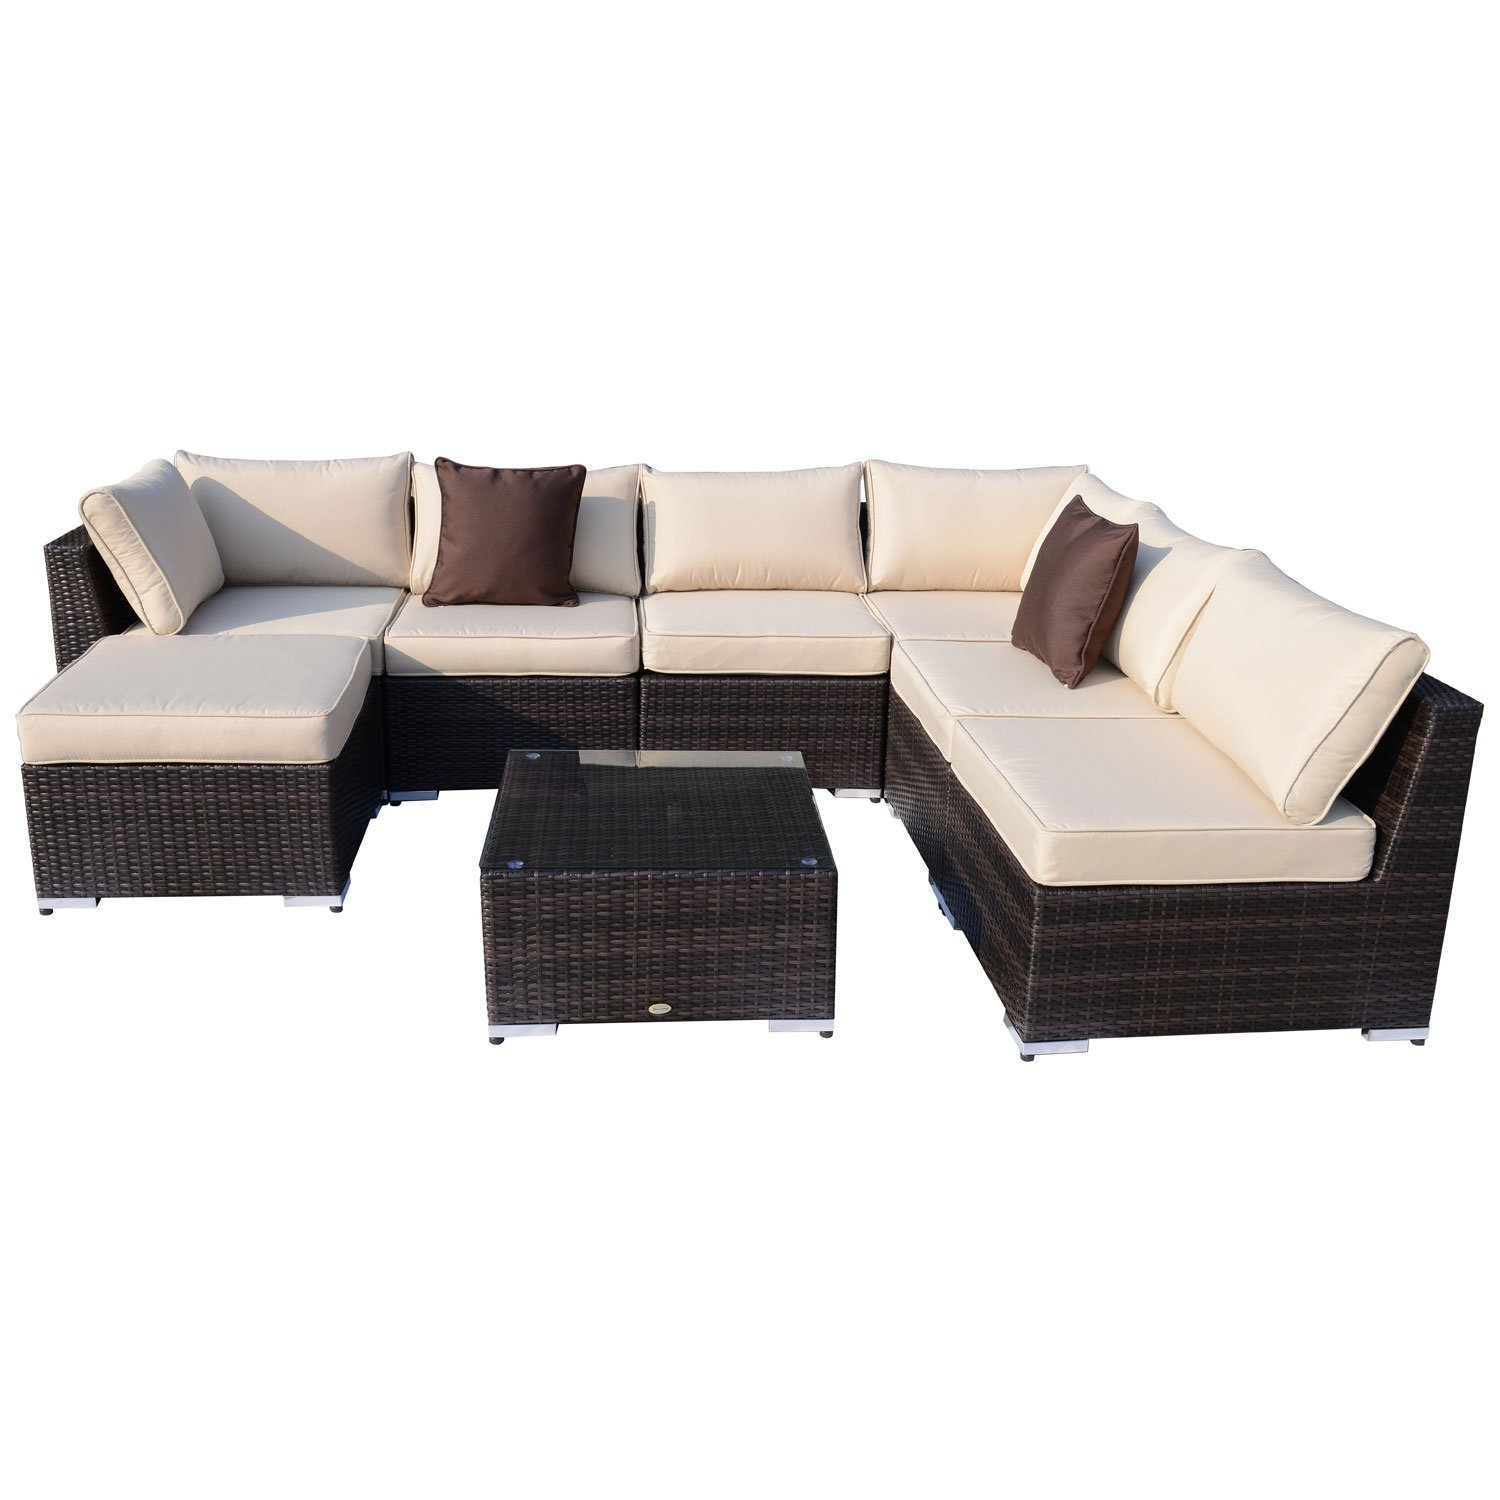 gartenlounge rattan berdacht. Black Bedroom Furniture Sets. Home Design Ideas